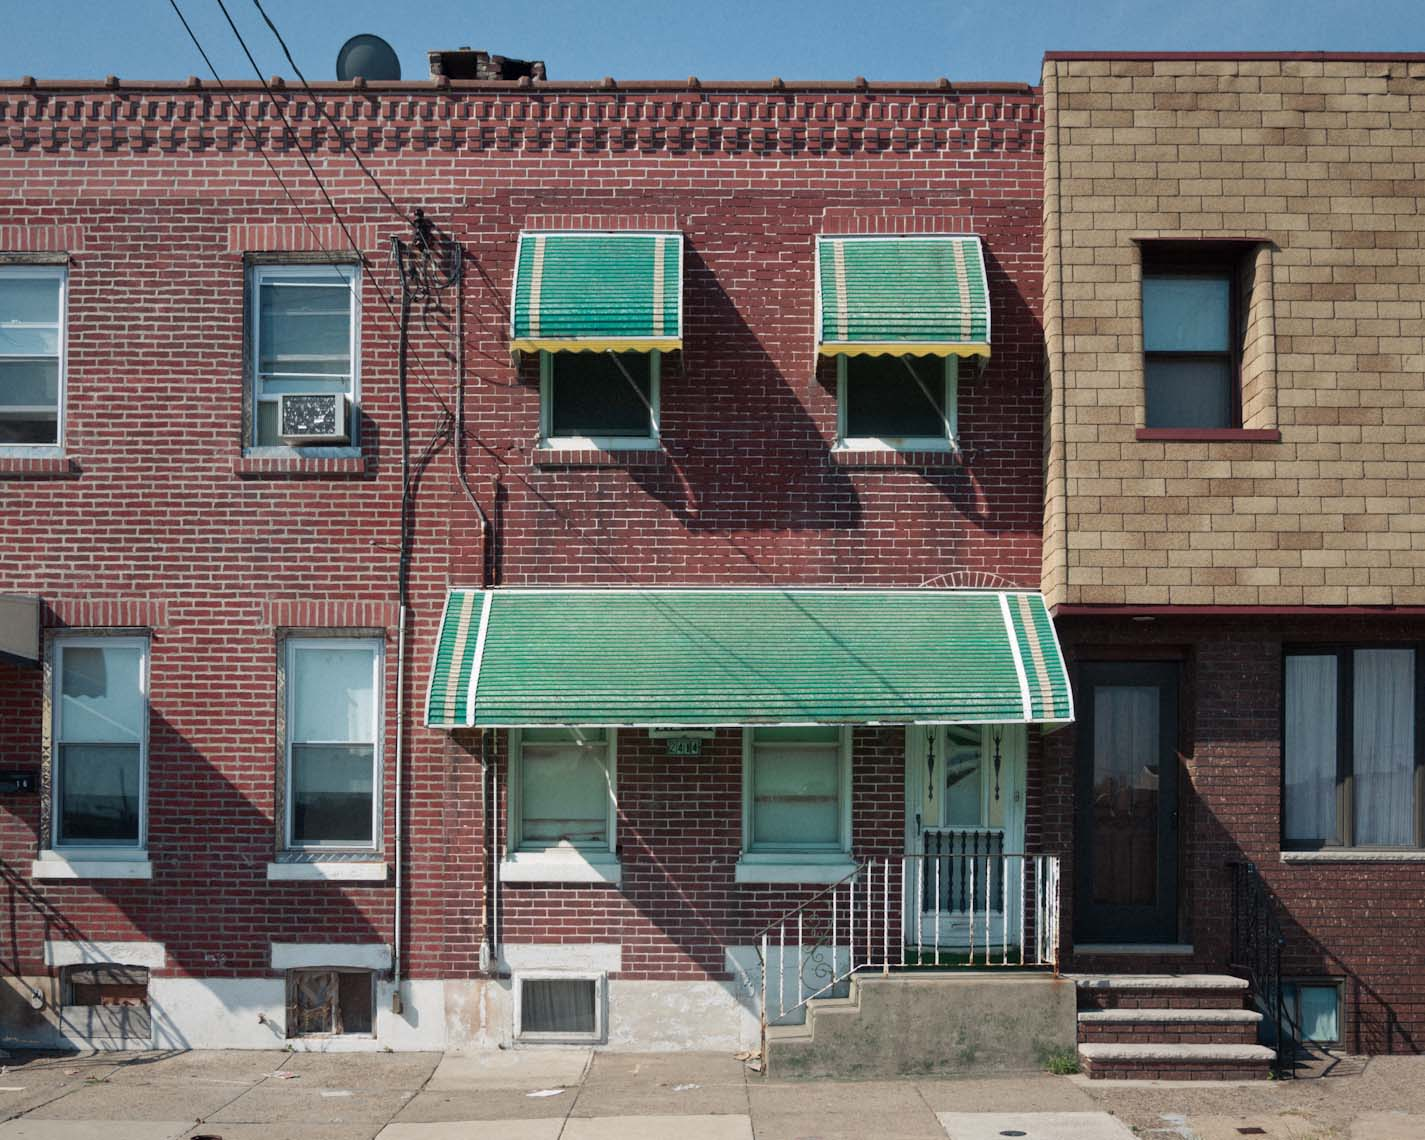 Philadephia_Houses.jpg